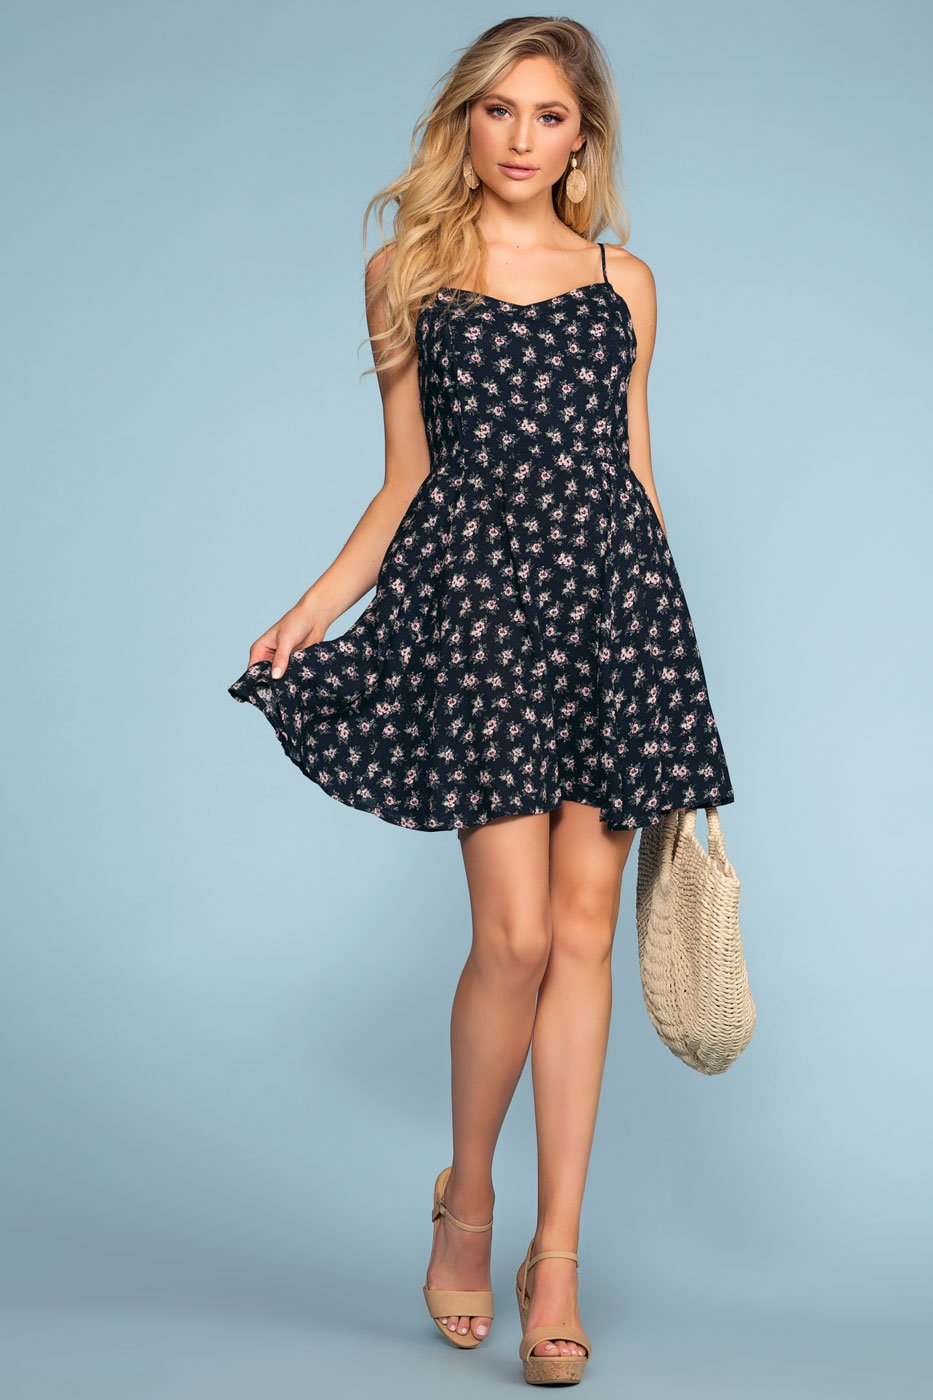 Dresses - Teagan Floral Dress - Navy